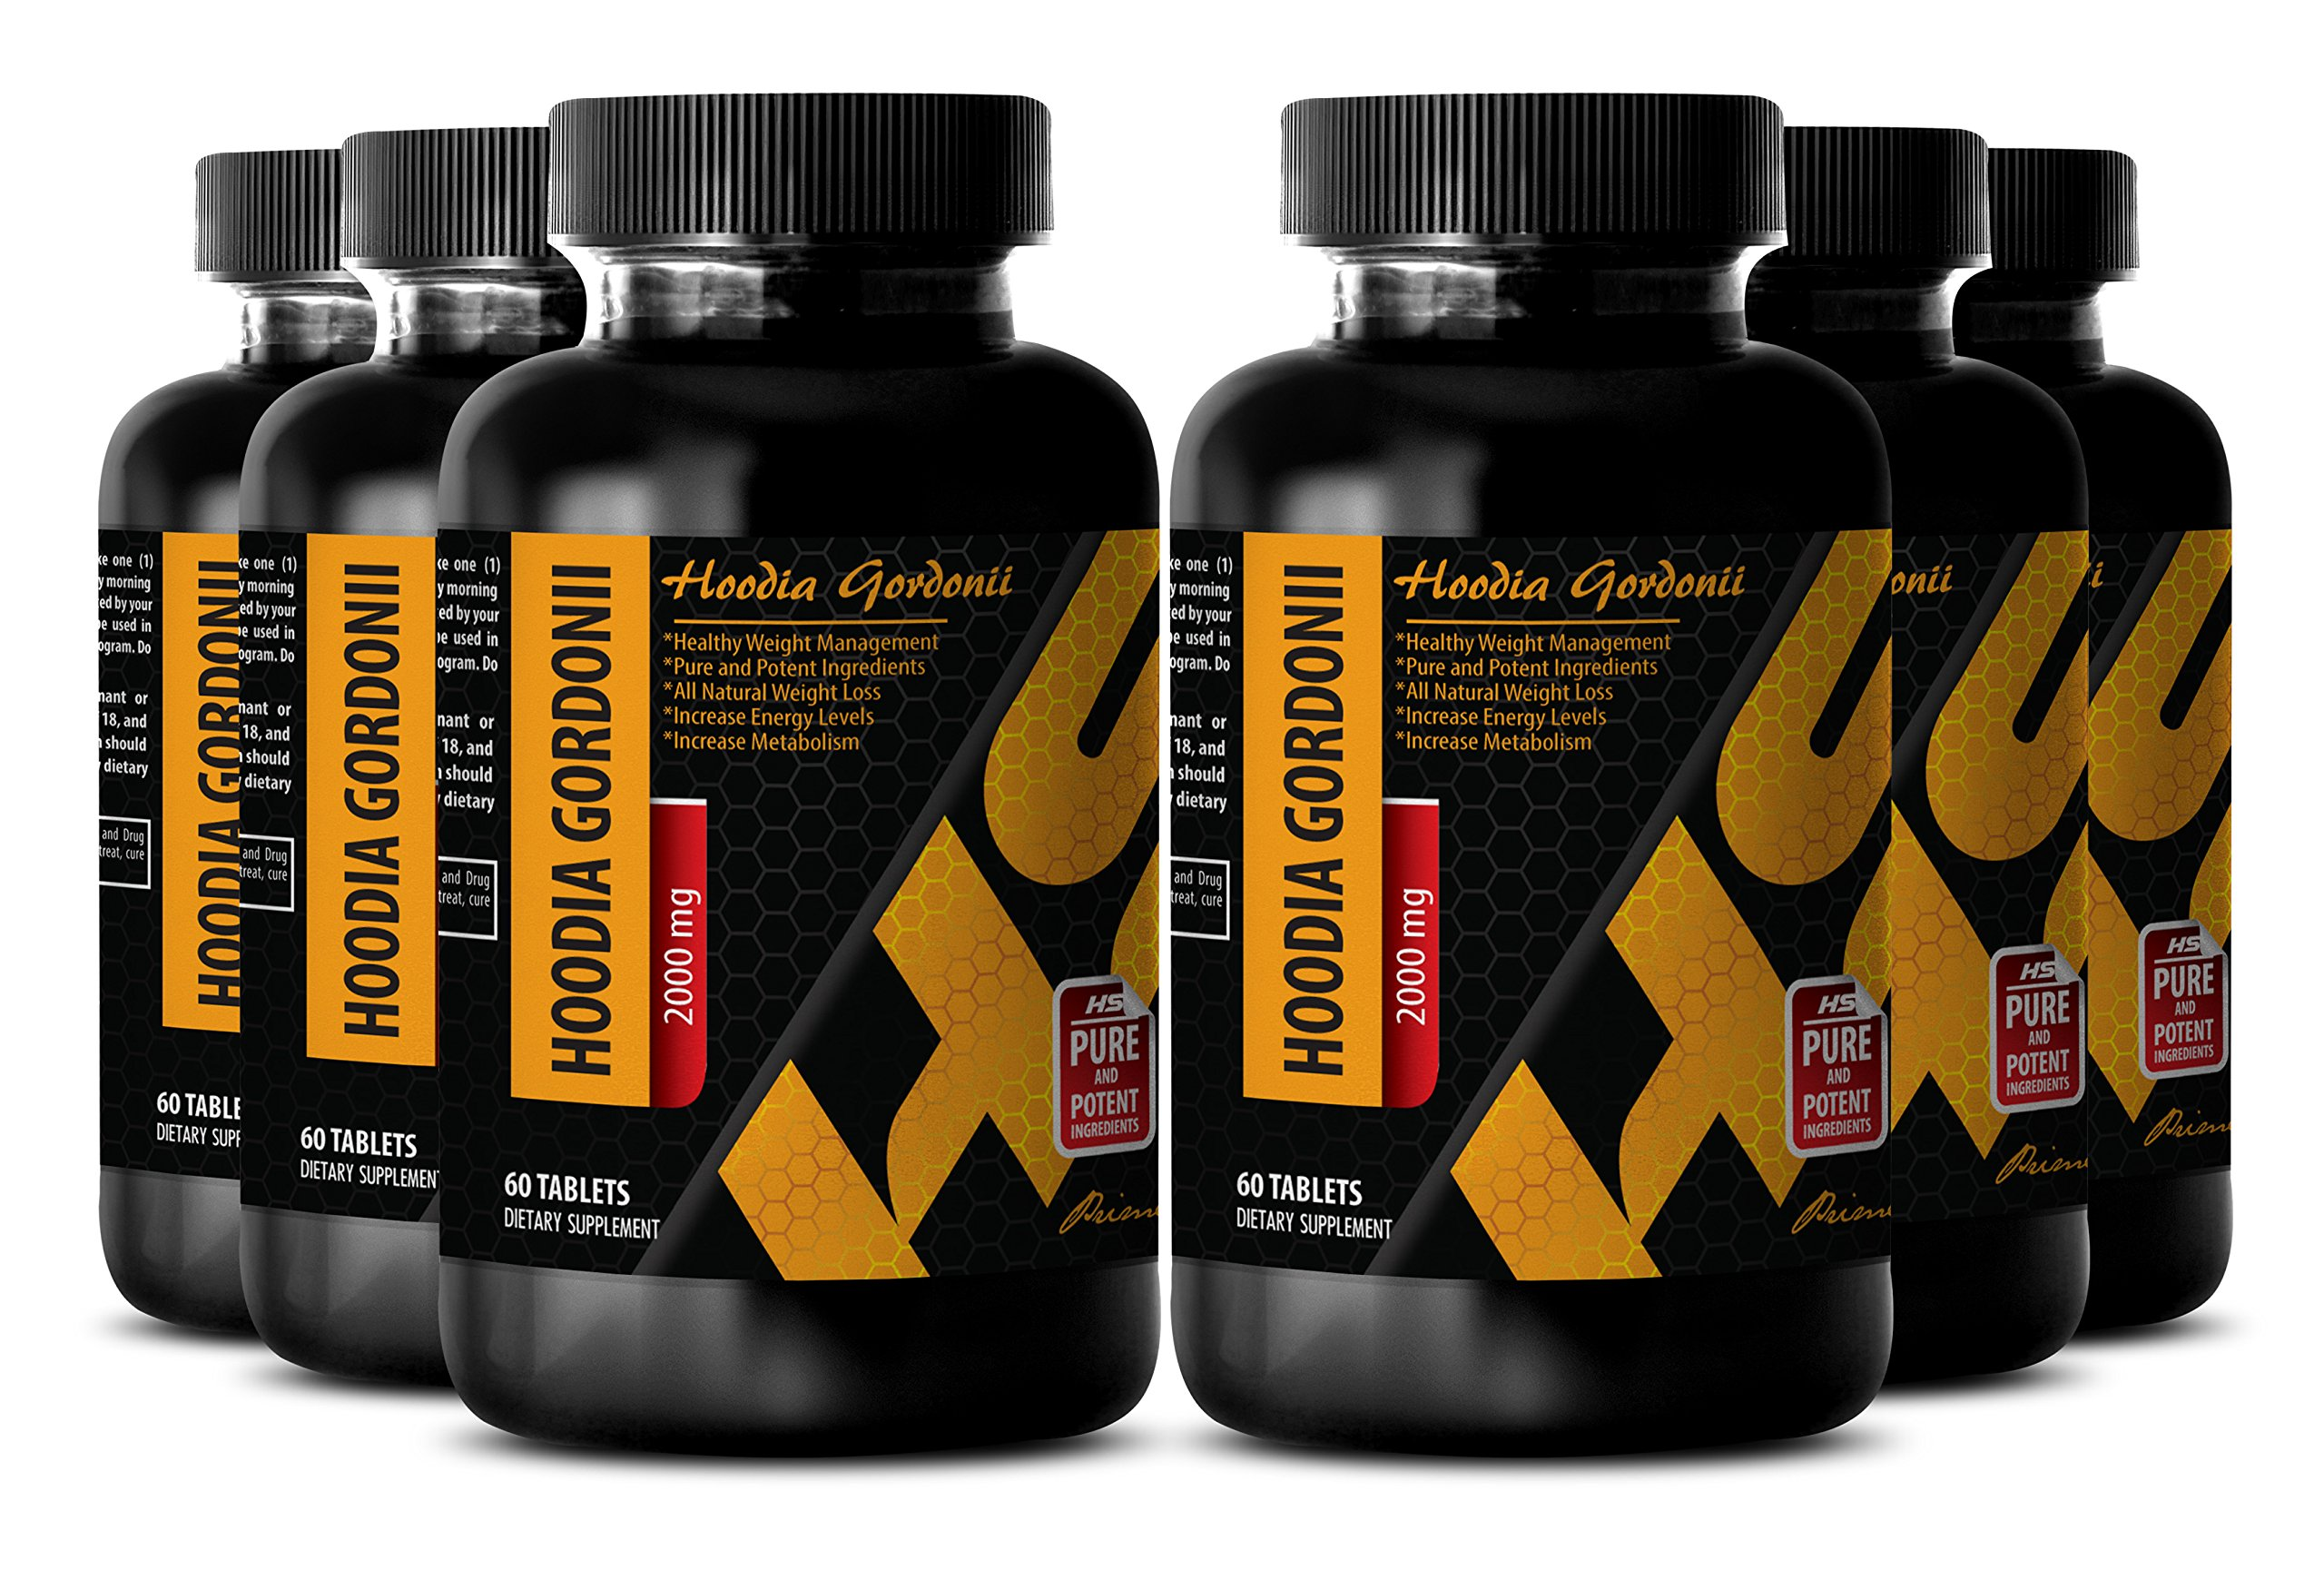 Metabolism vitamins - PURE HOODIA GORDONII EXTRACT 2000 Mg - Natural appetite suppressant - 6 Bottle 360 Tablets